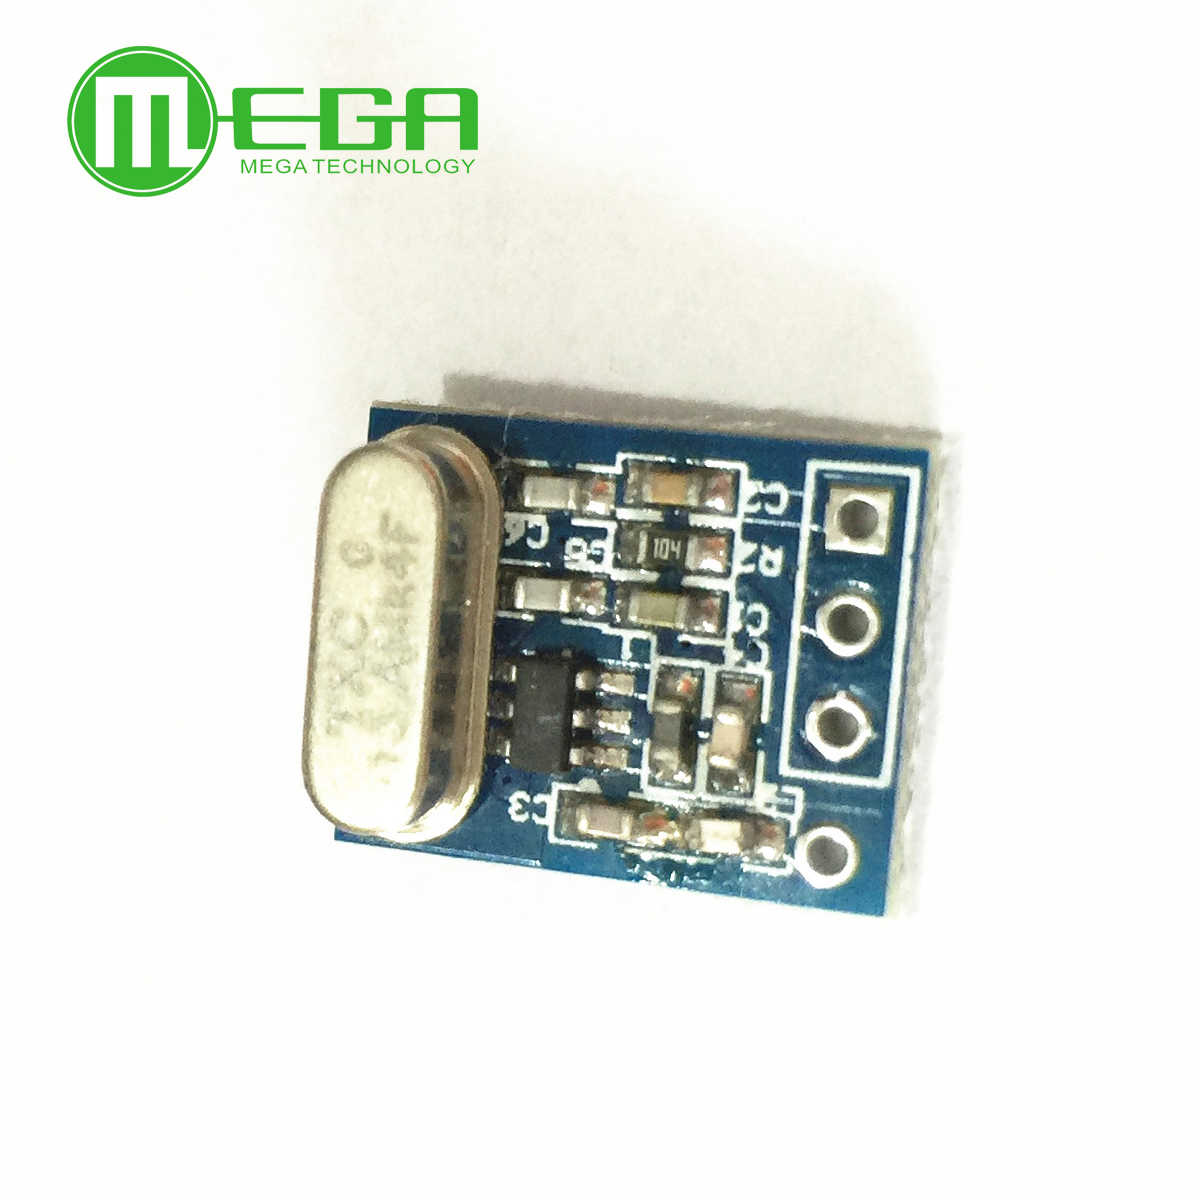 SYN115 433 MHZ Transmitter & Receiver Modul Papan Modul ASK Wireless SYN480R (433 MHZ)